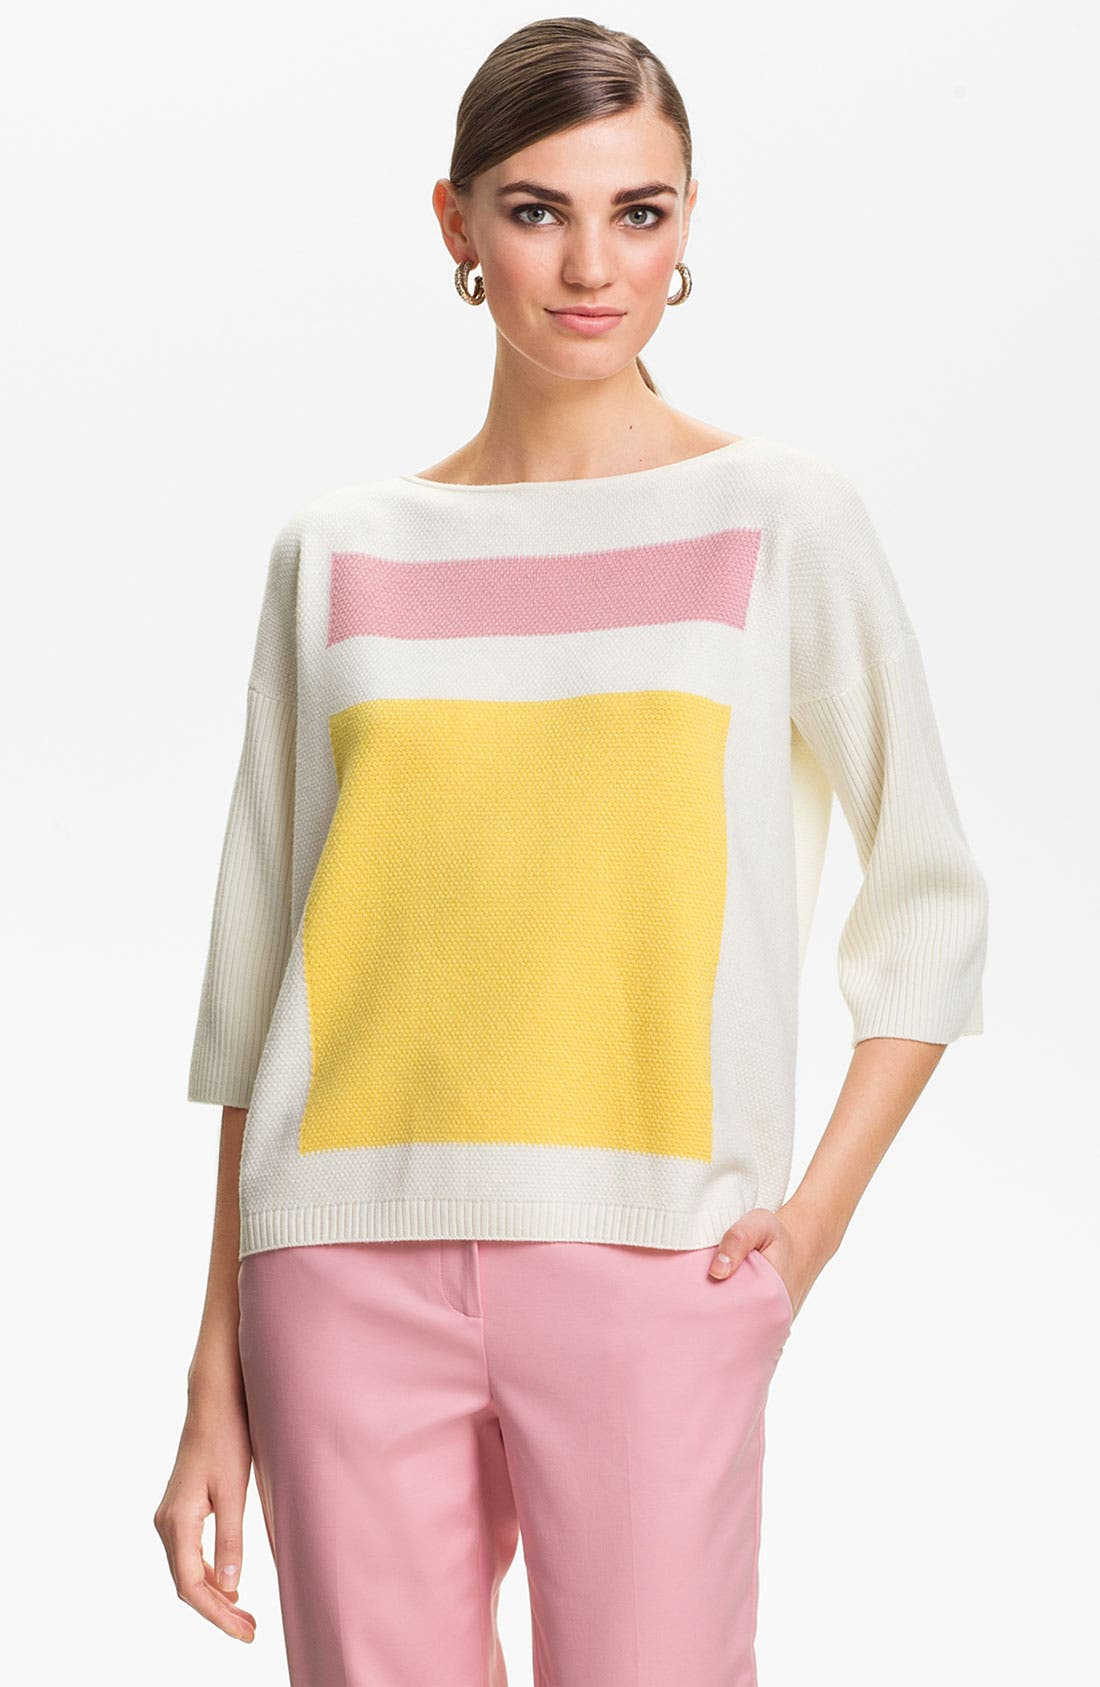 Alternate Image 1 Selected - St. John Yellow Label Colorblock Popcorn Knit Sweater